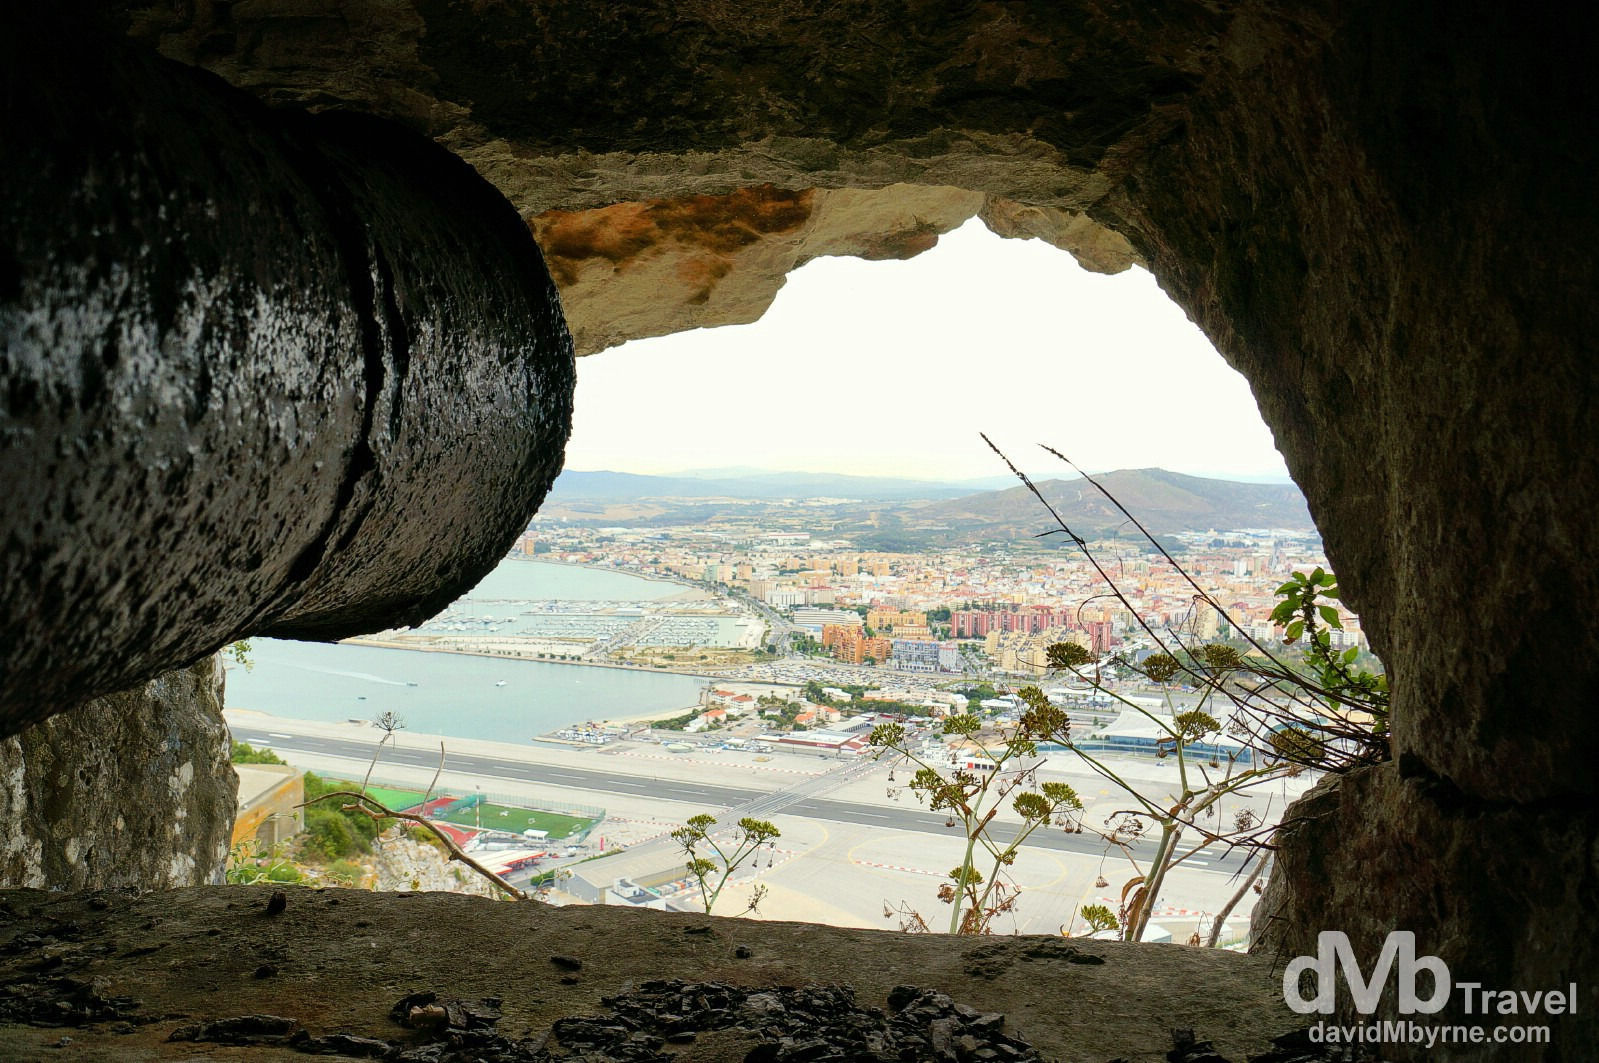 Looking out from one of the openings in the Great Siege Tunnels in The Upper Rock Nature Reserve, Gibraltar. June 5th, 2014.